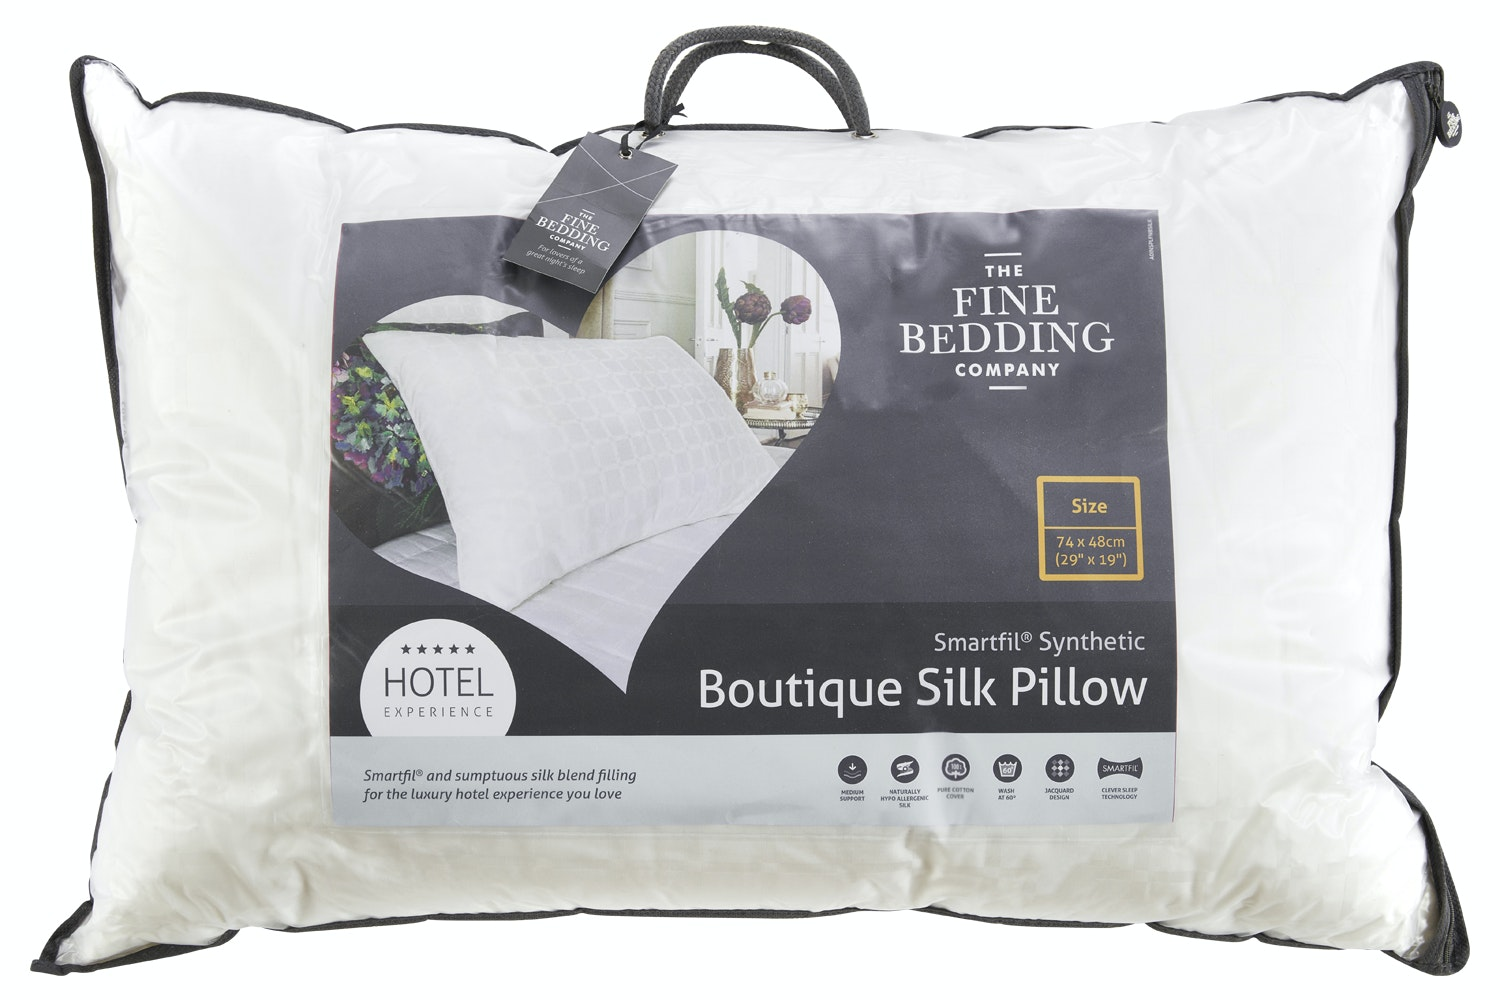 Boutique Silk Pillow